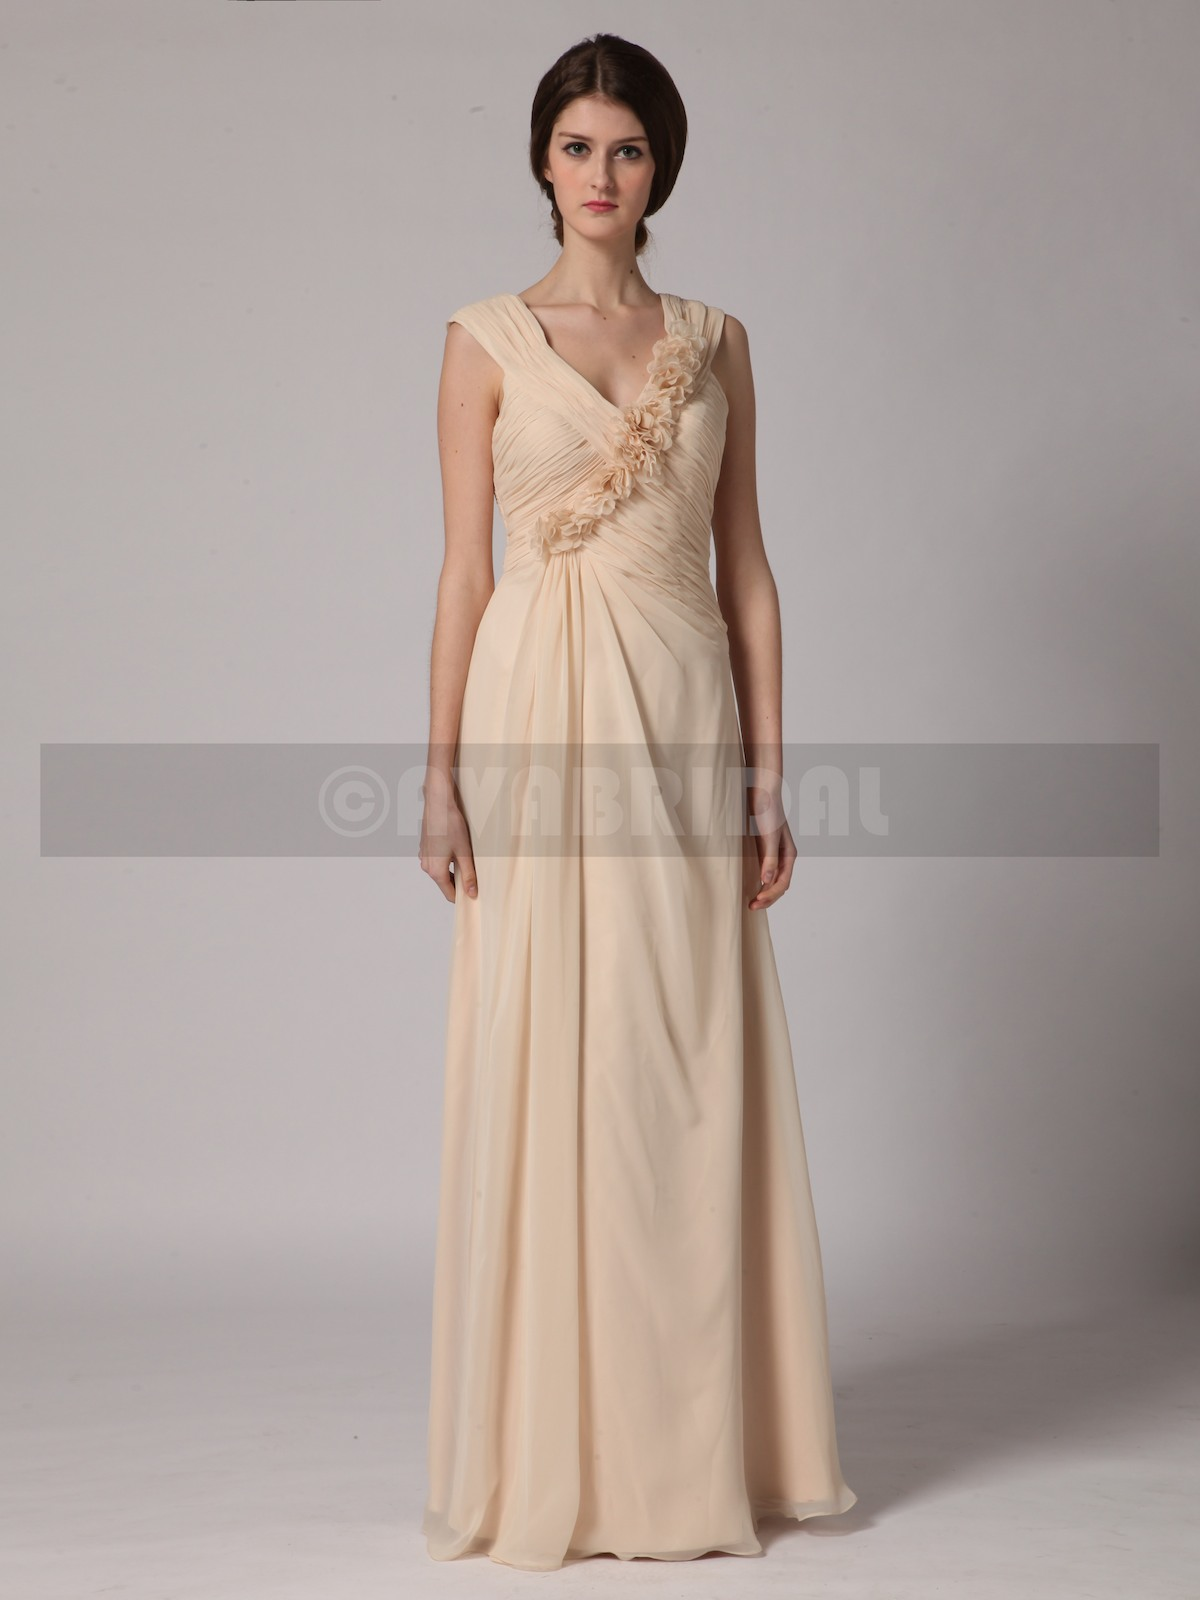 Beach Casual Bridesmaid Dress B440-Front